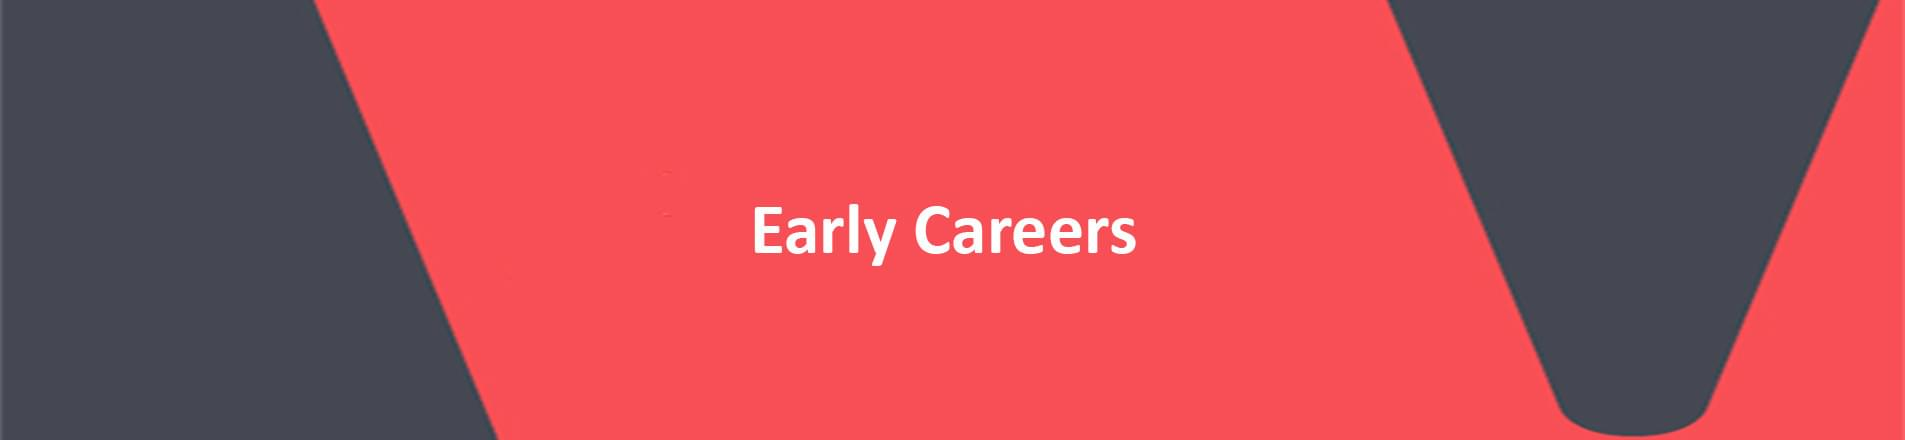 Early Careers